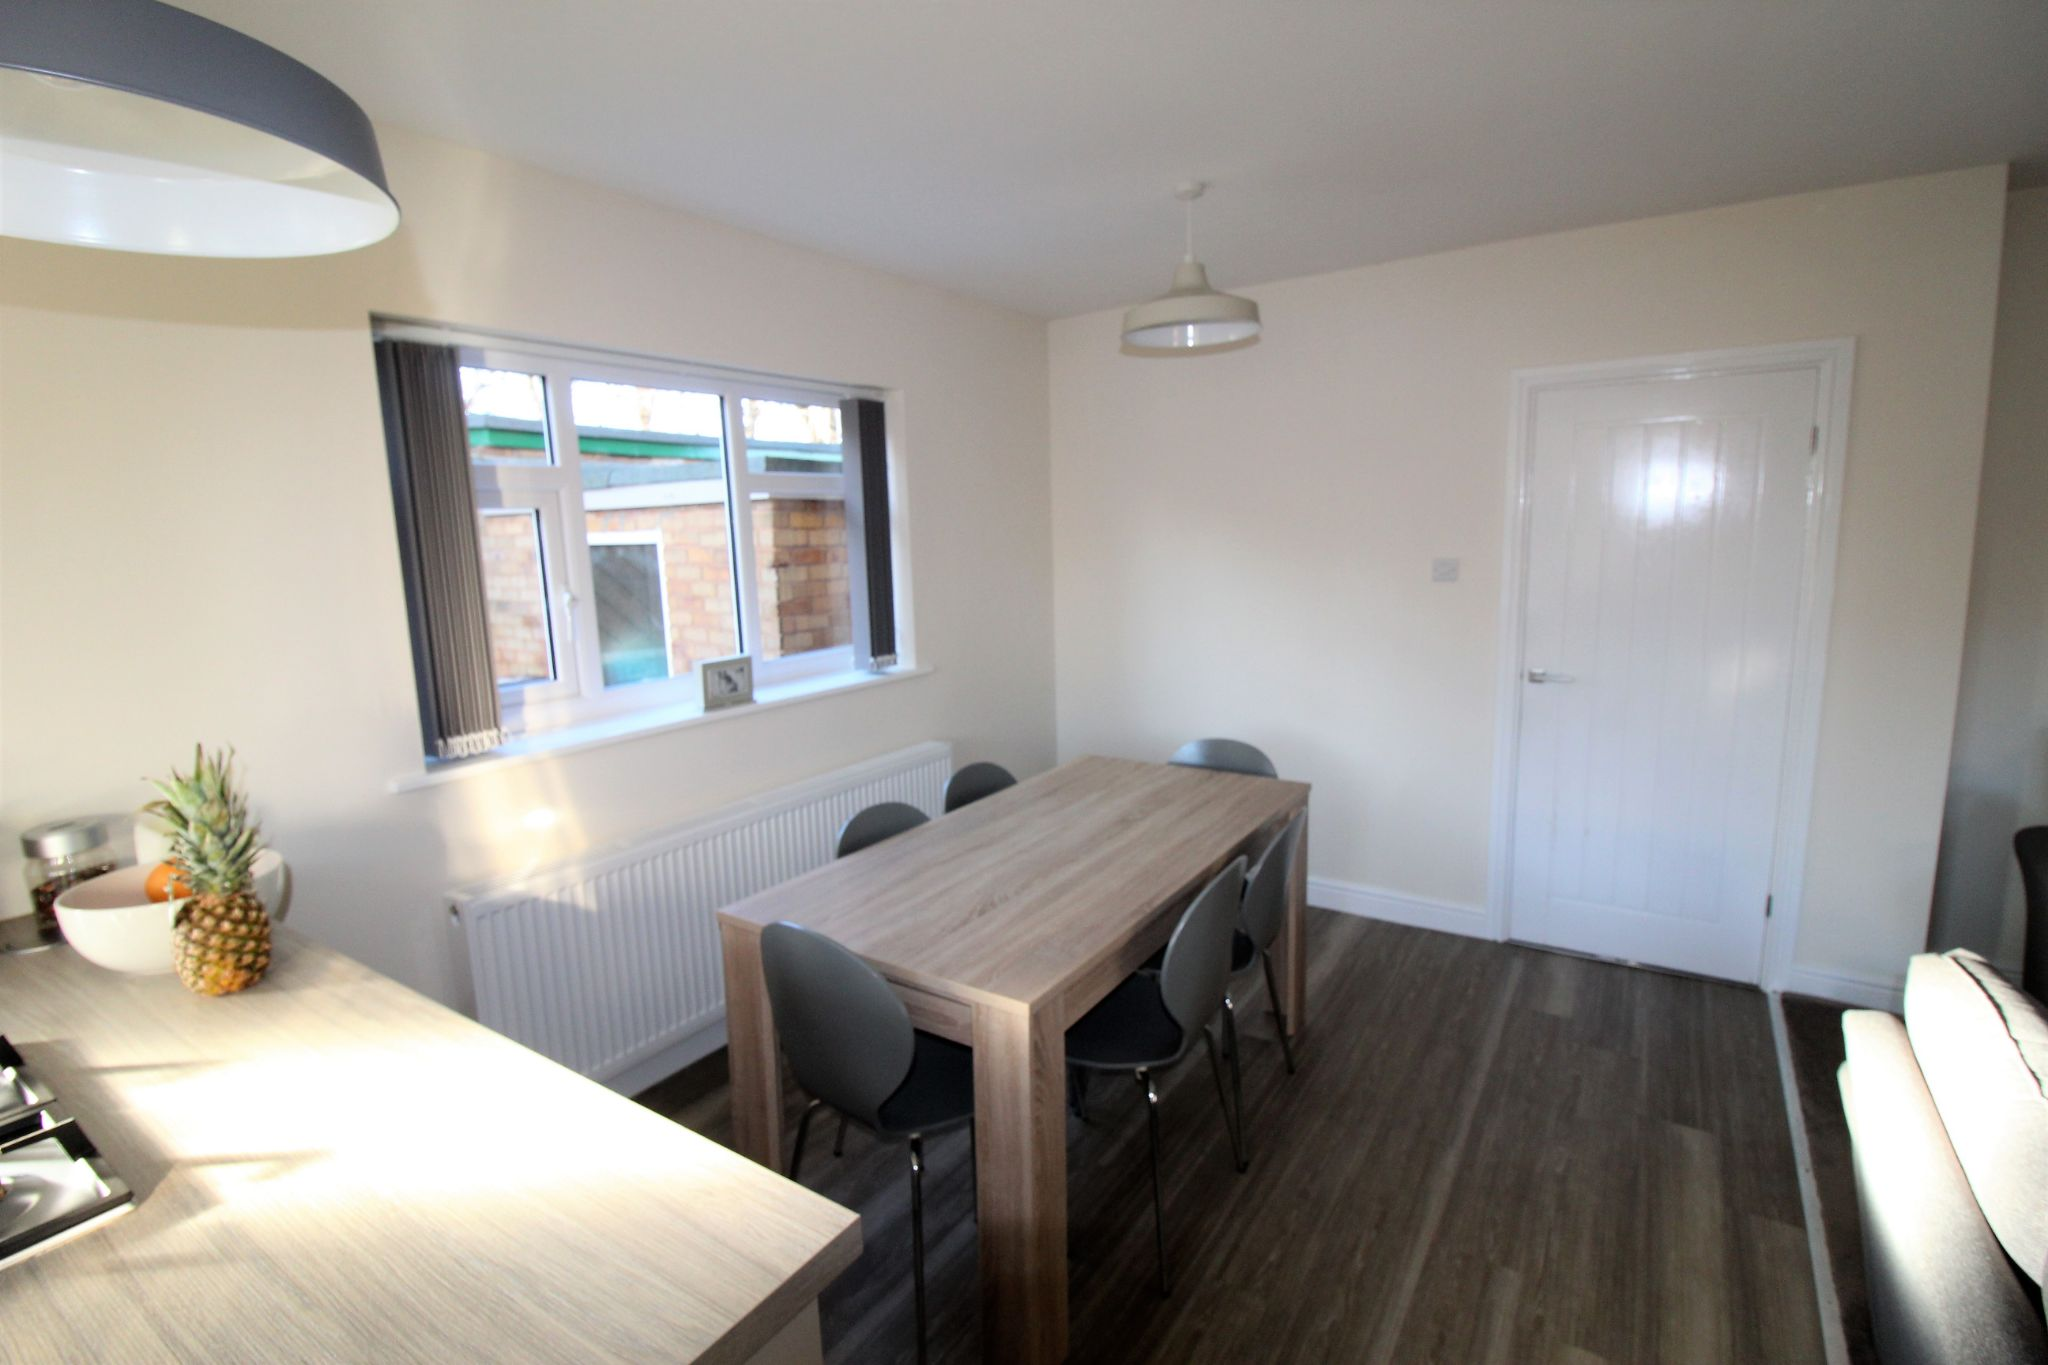 4 bedroom semi-detached bungalow SSTC in Brighouse - Dining area